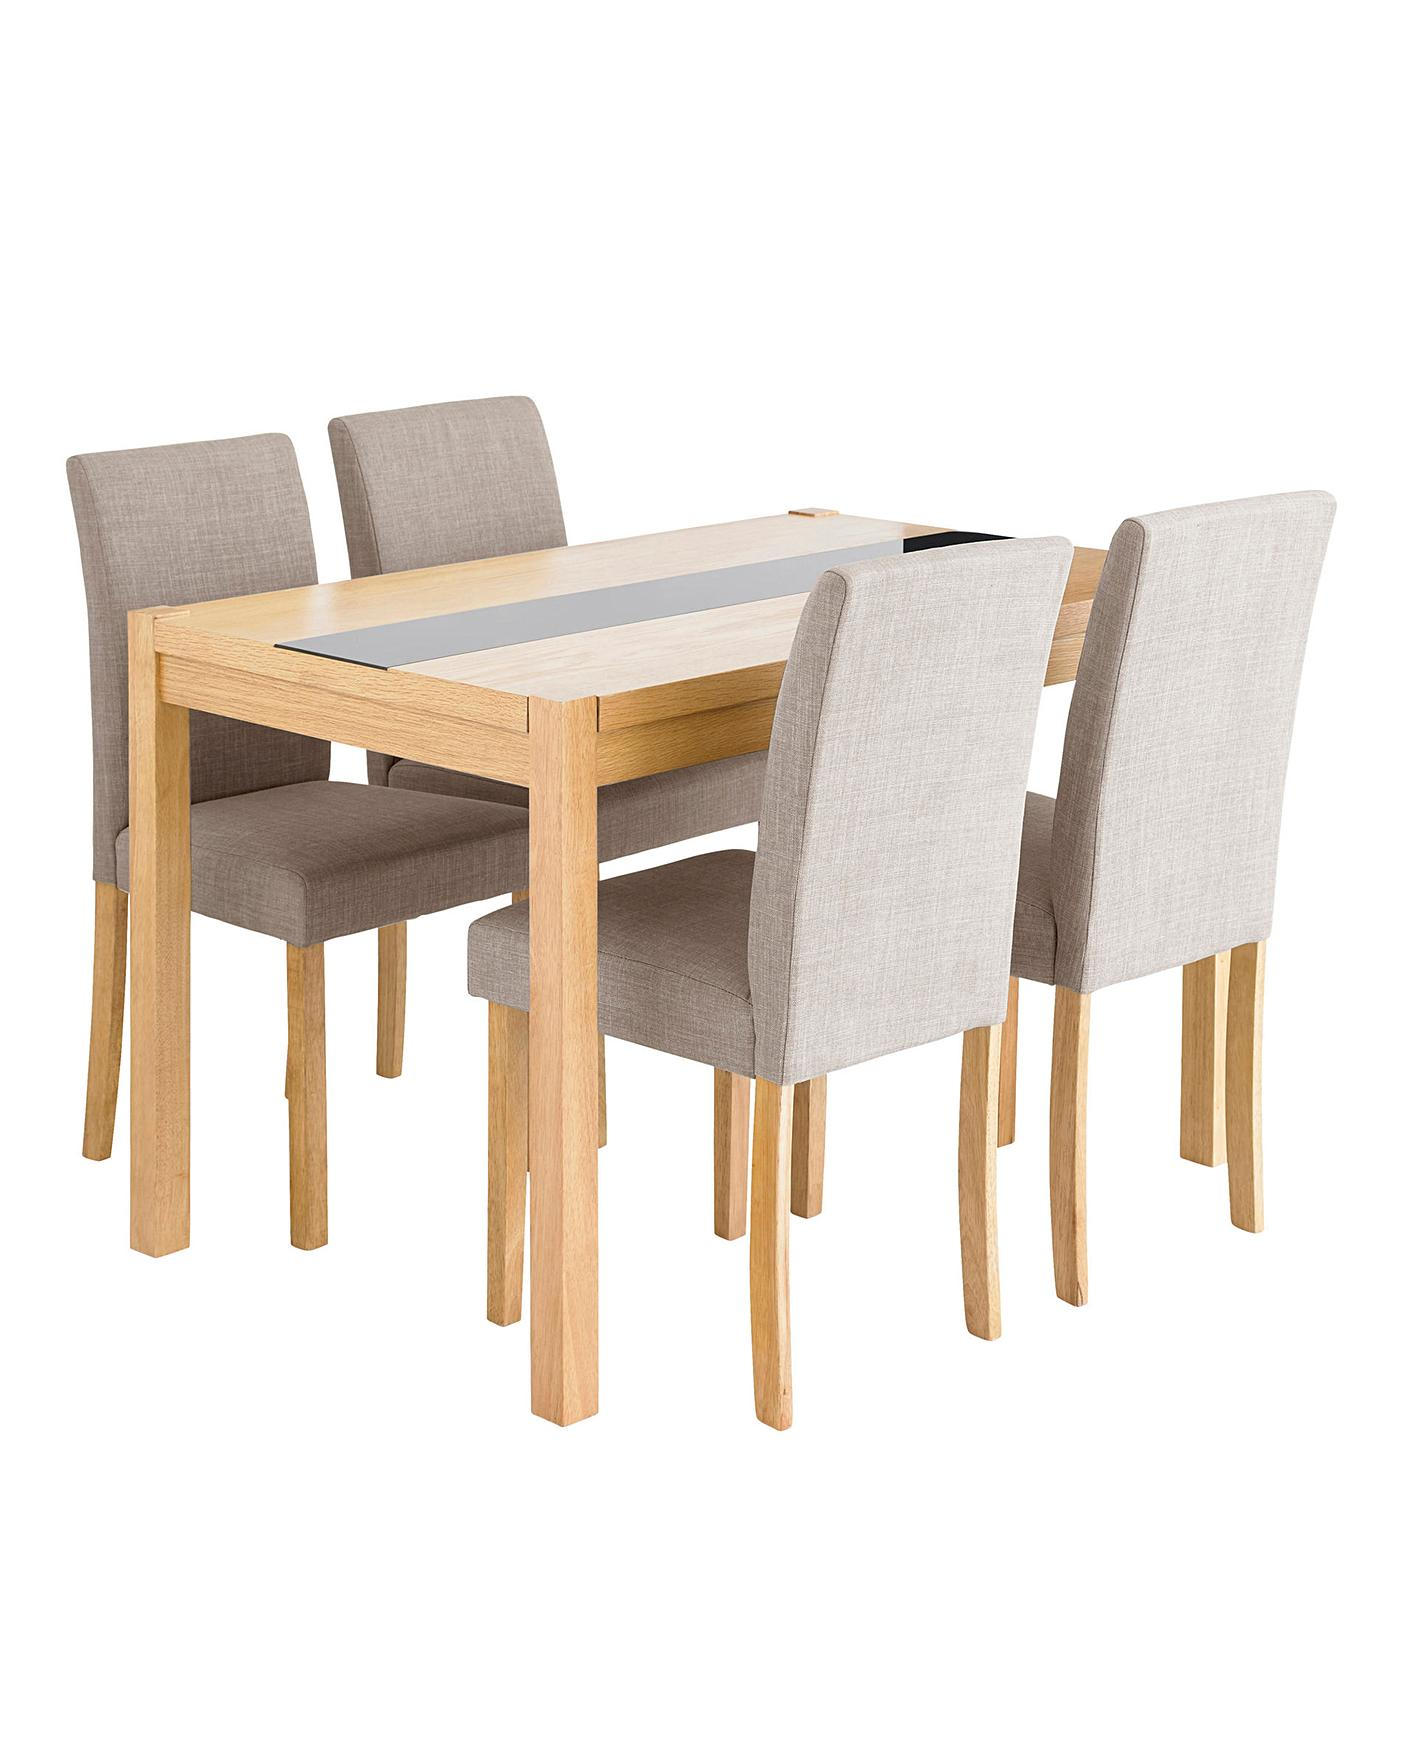 Super Oakham Glass Panel Dining Table 4 Chairs Download Free Architecture Designs Viewormadebymaigaardcom